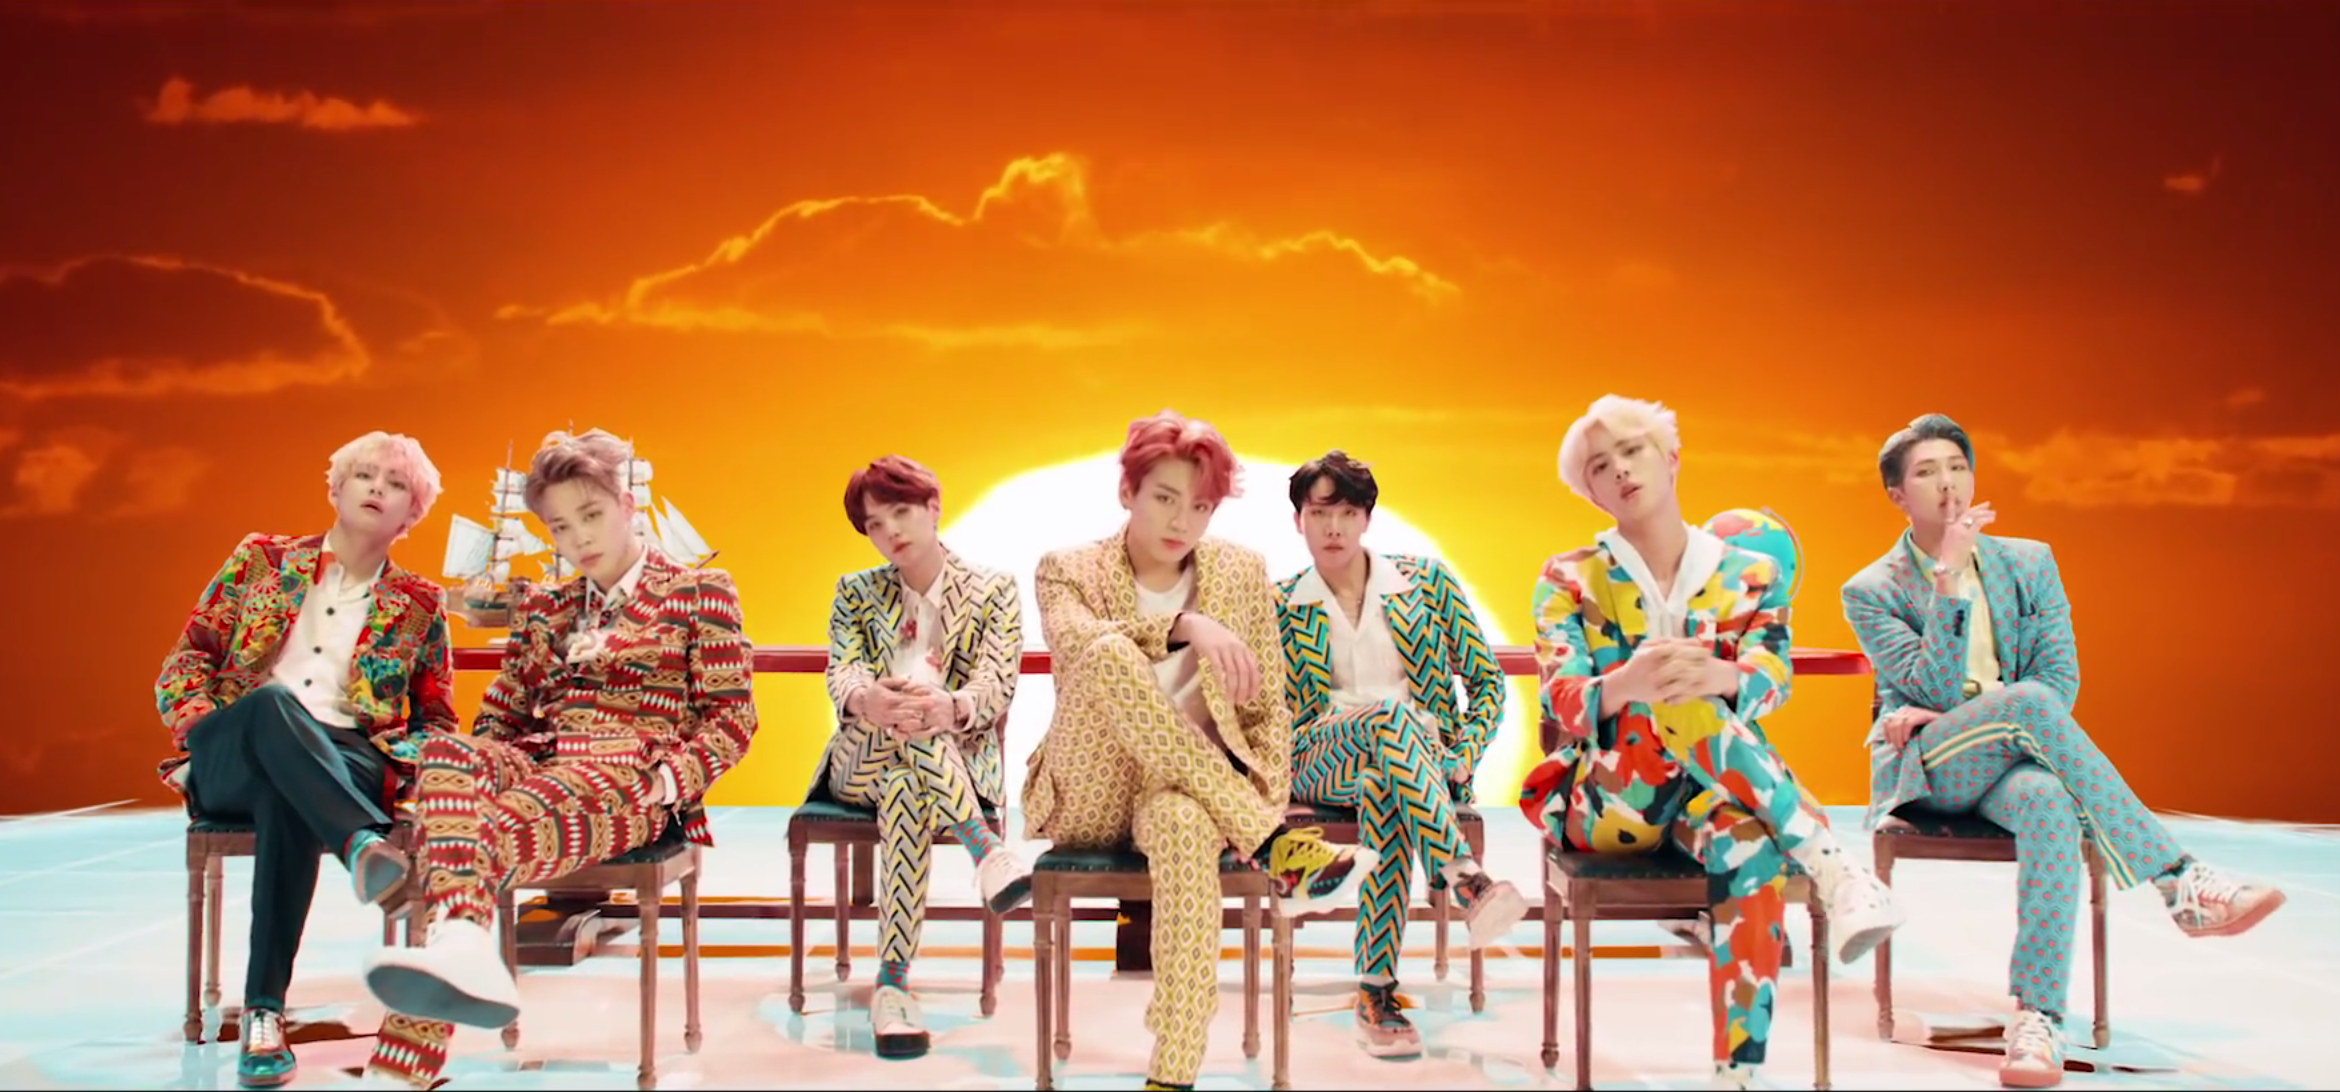 Bts Break Taylor Swift S Youtube Record For Biggest Music Video